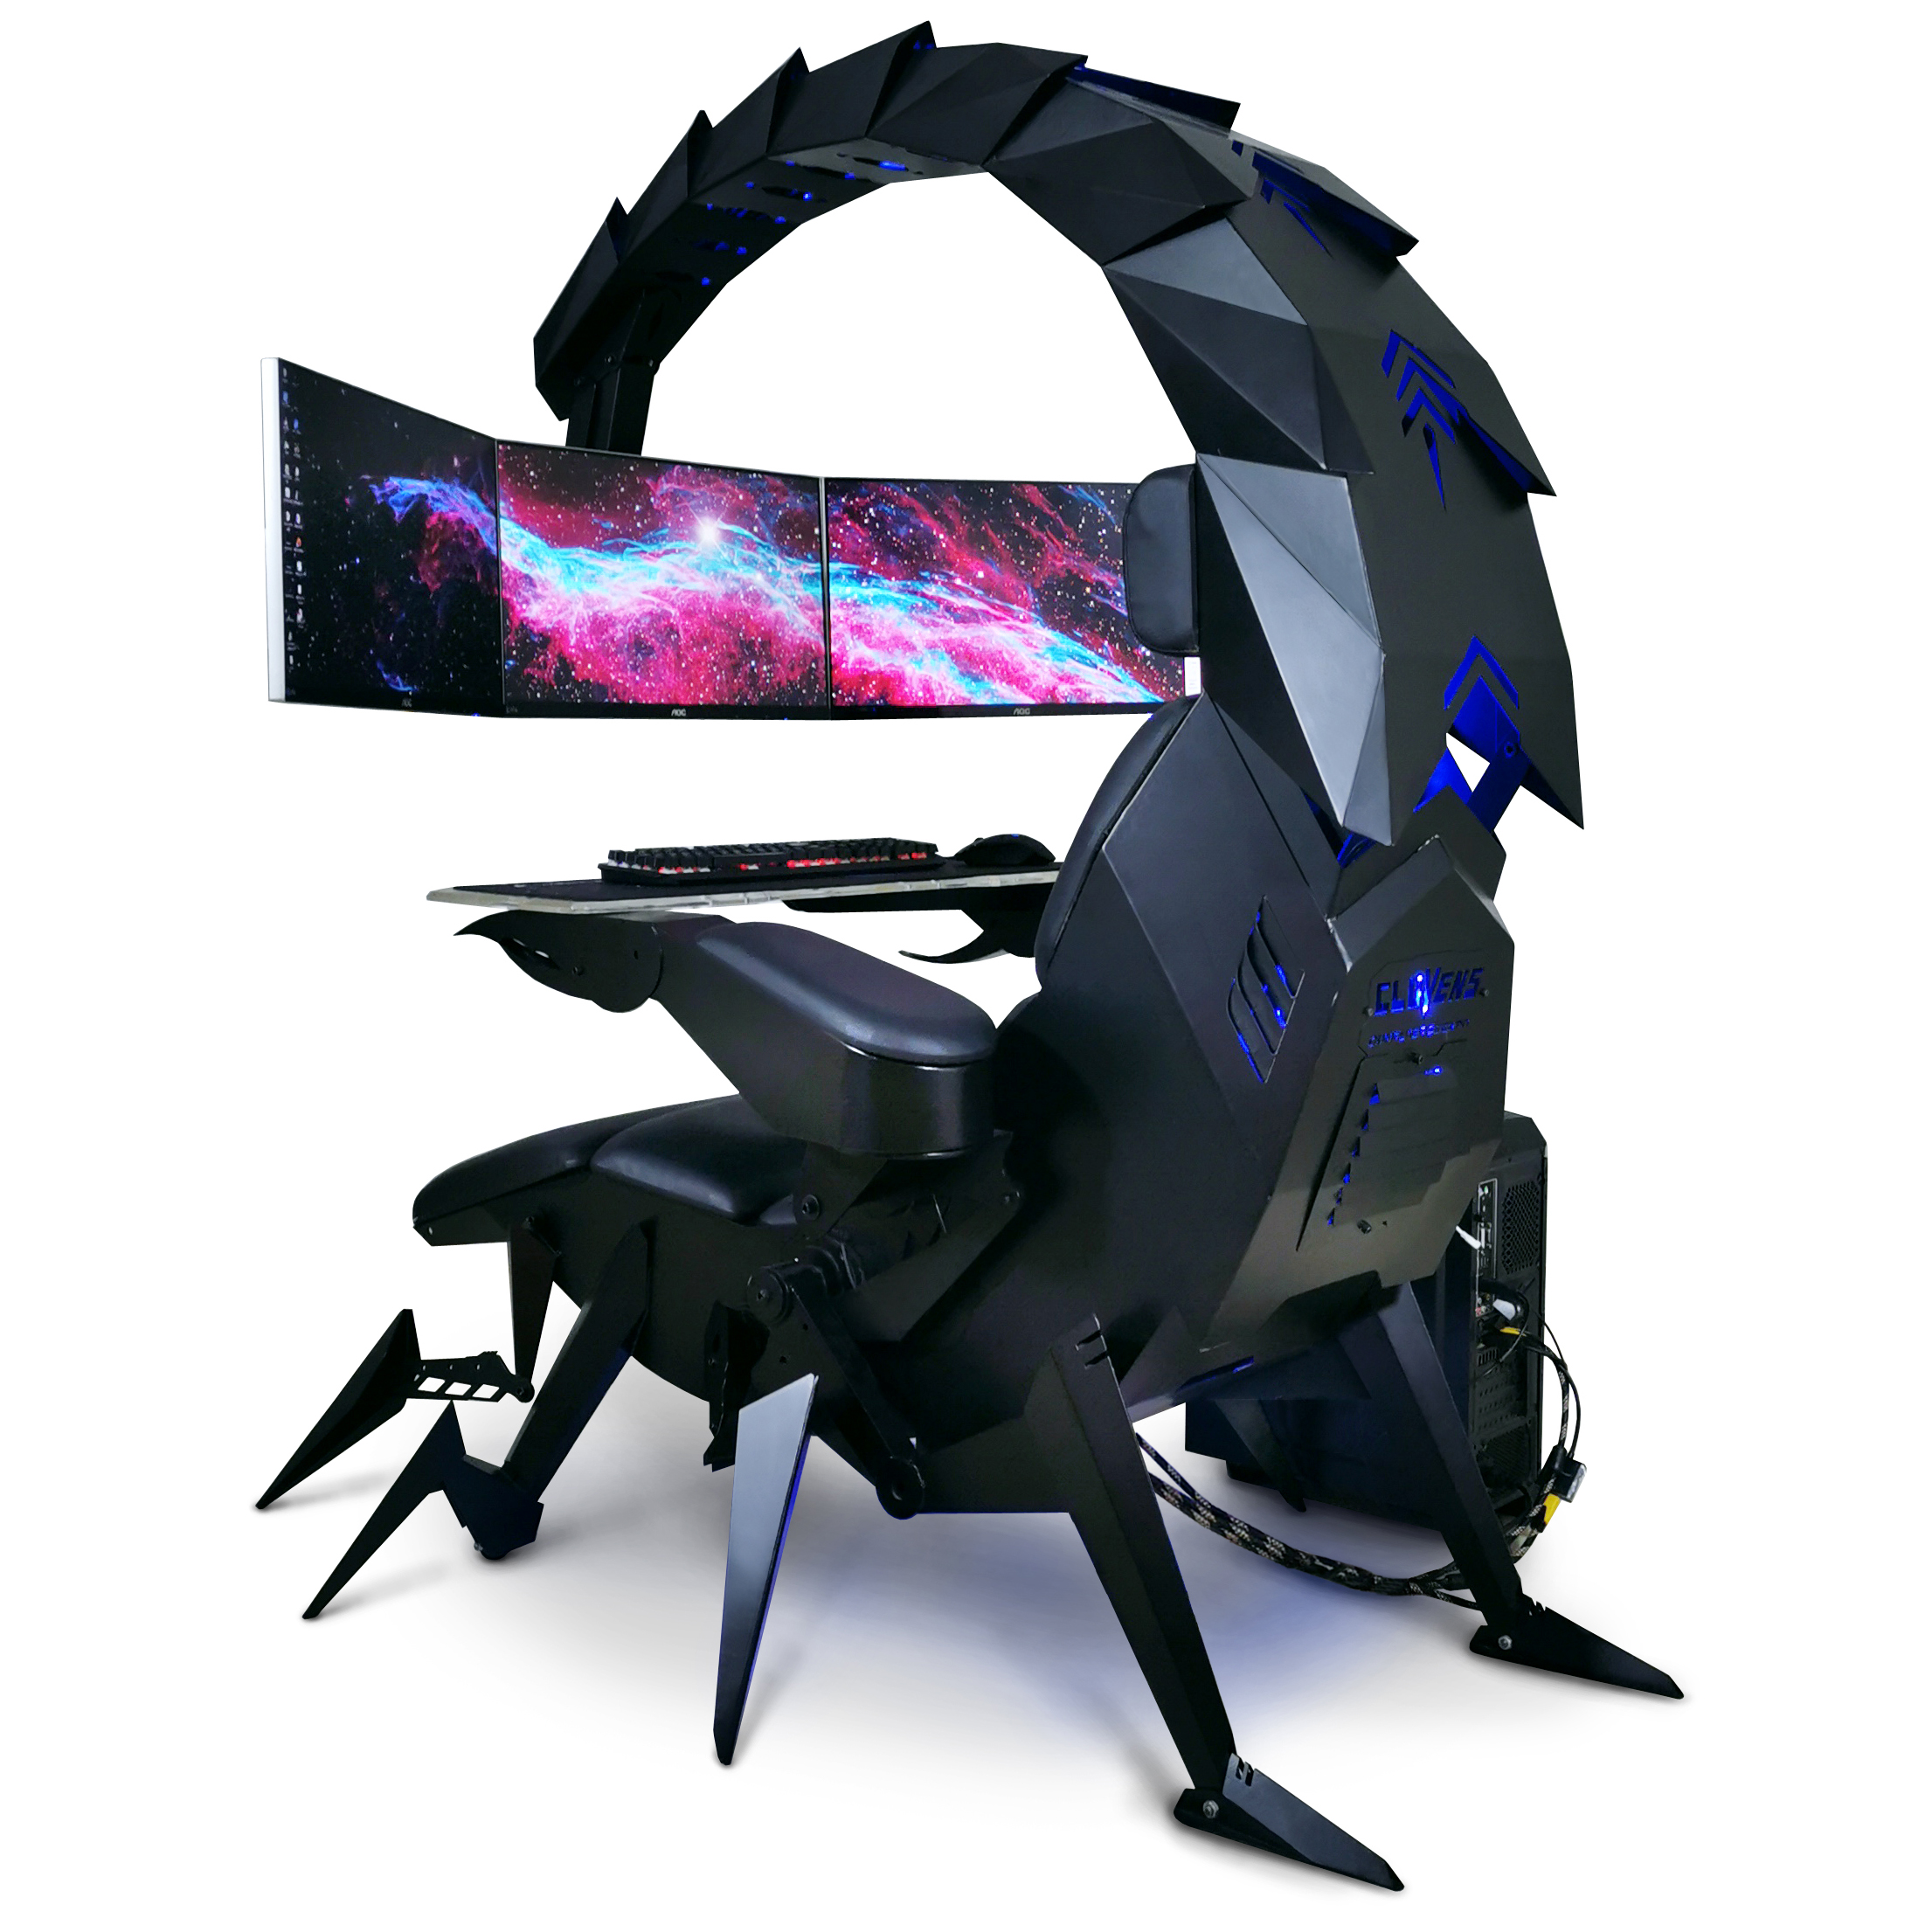 Cluvens IW-SK scorpion Computer cockpit droideka chair automatic support 3 monitors better emperor acer predator thronos